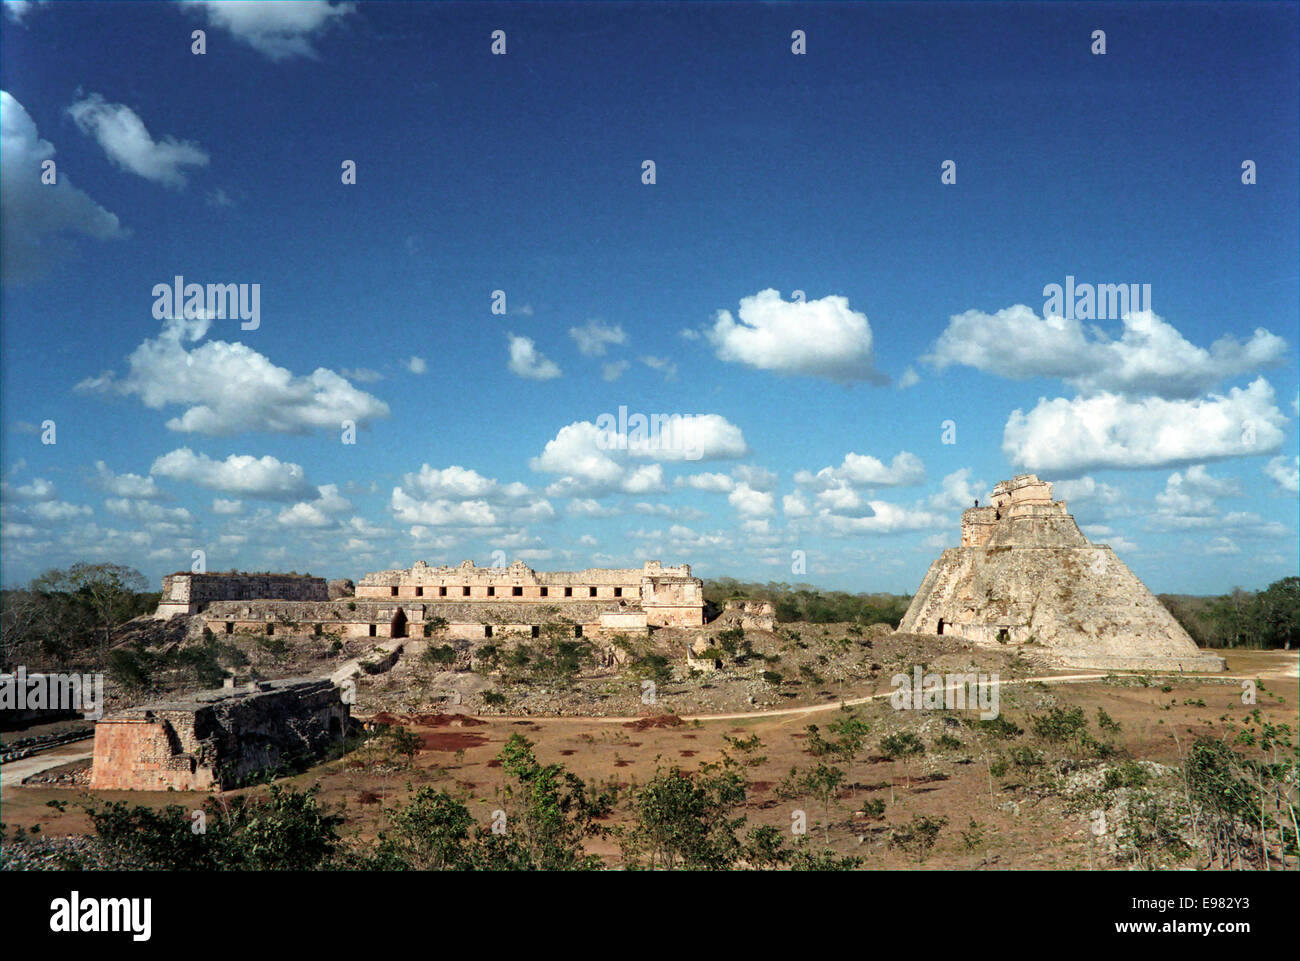 the-mayan-ruins-of-uxmal-in-1987-before-